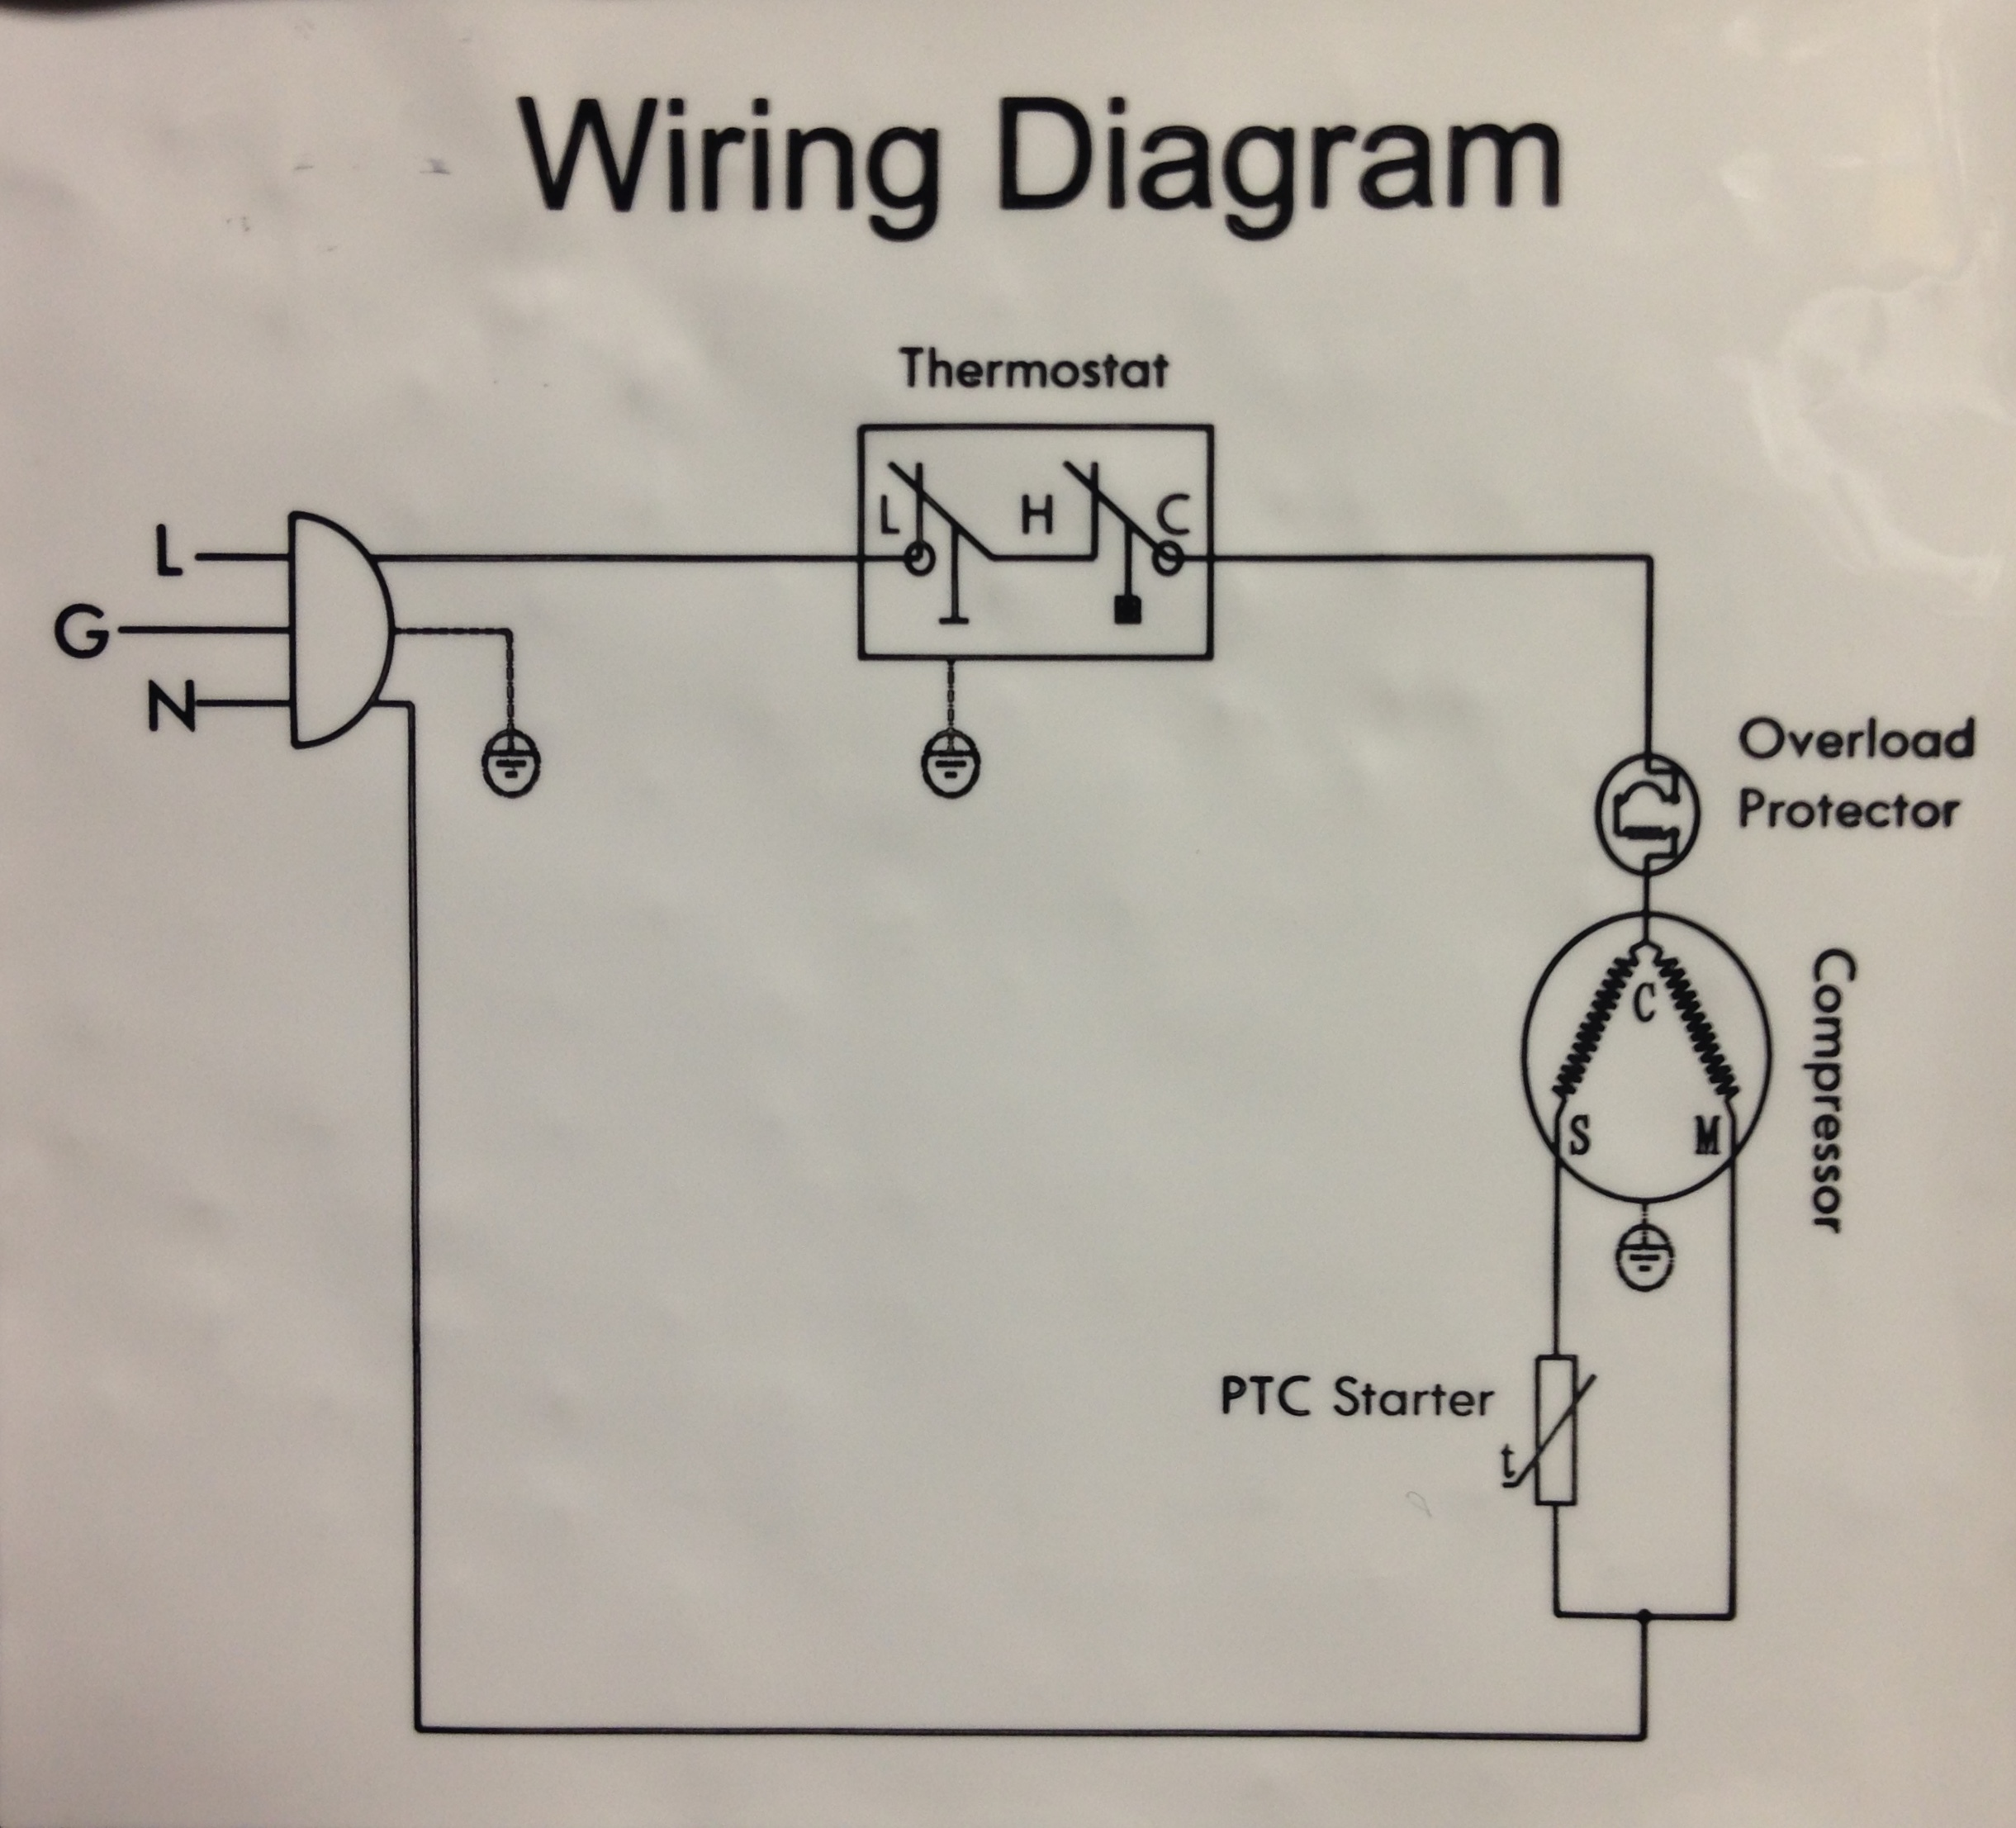 new build electronics newb diagram help fridge build brewpi rh community brewpi com fridge freezer thermostat wiring diagram kic fridge thermostat wiring diagram